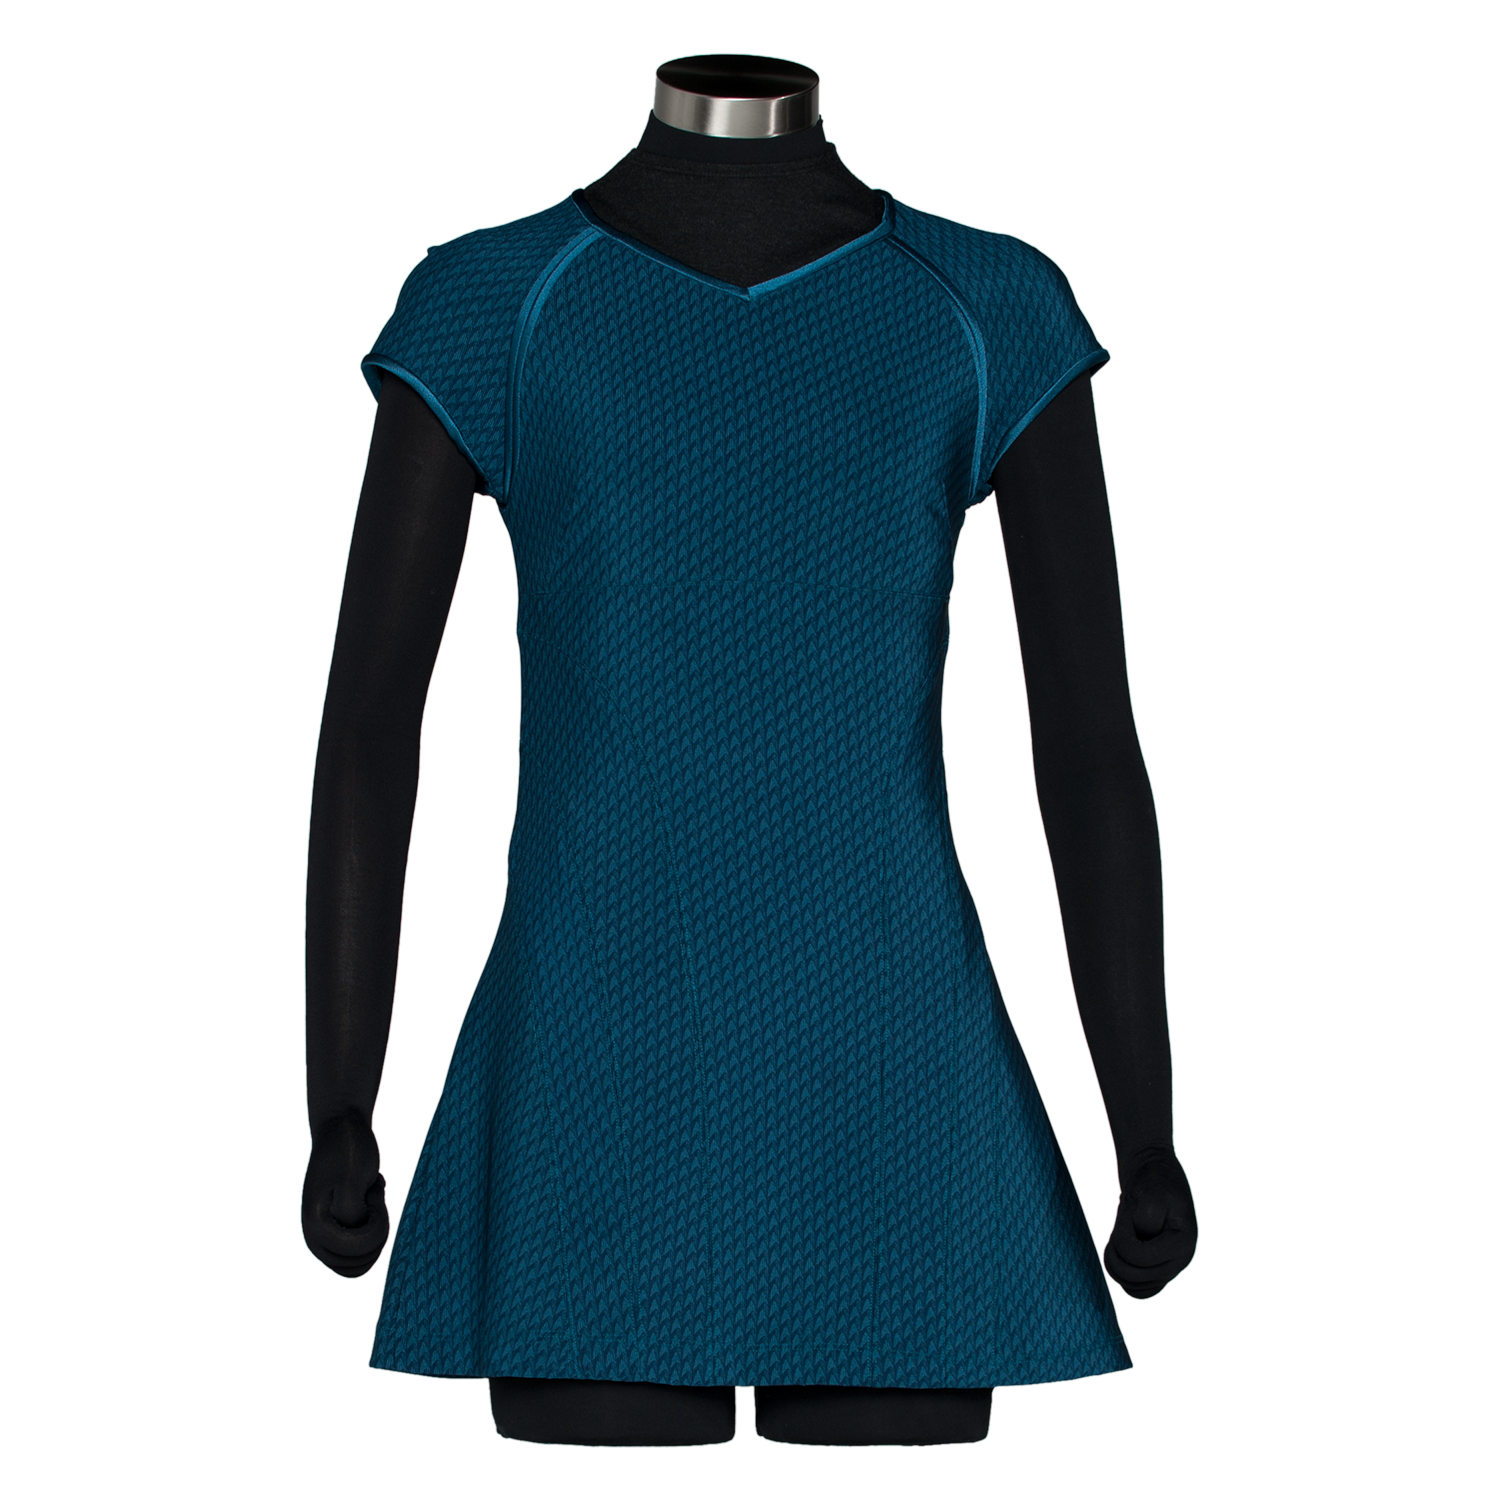 Star trek blue dress uk